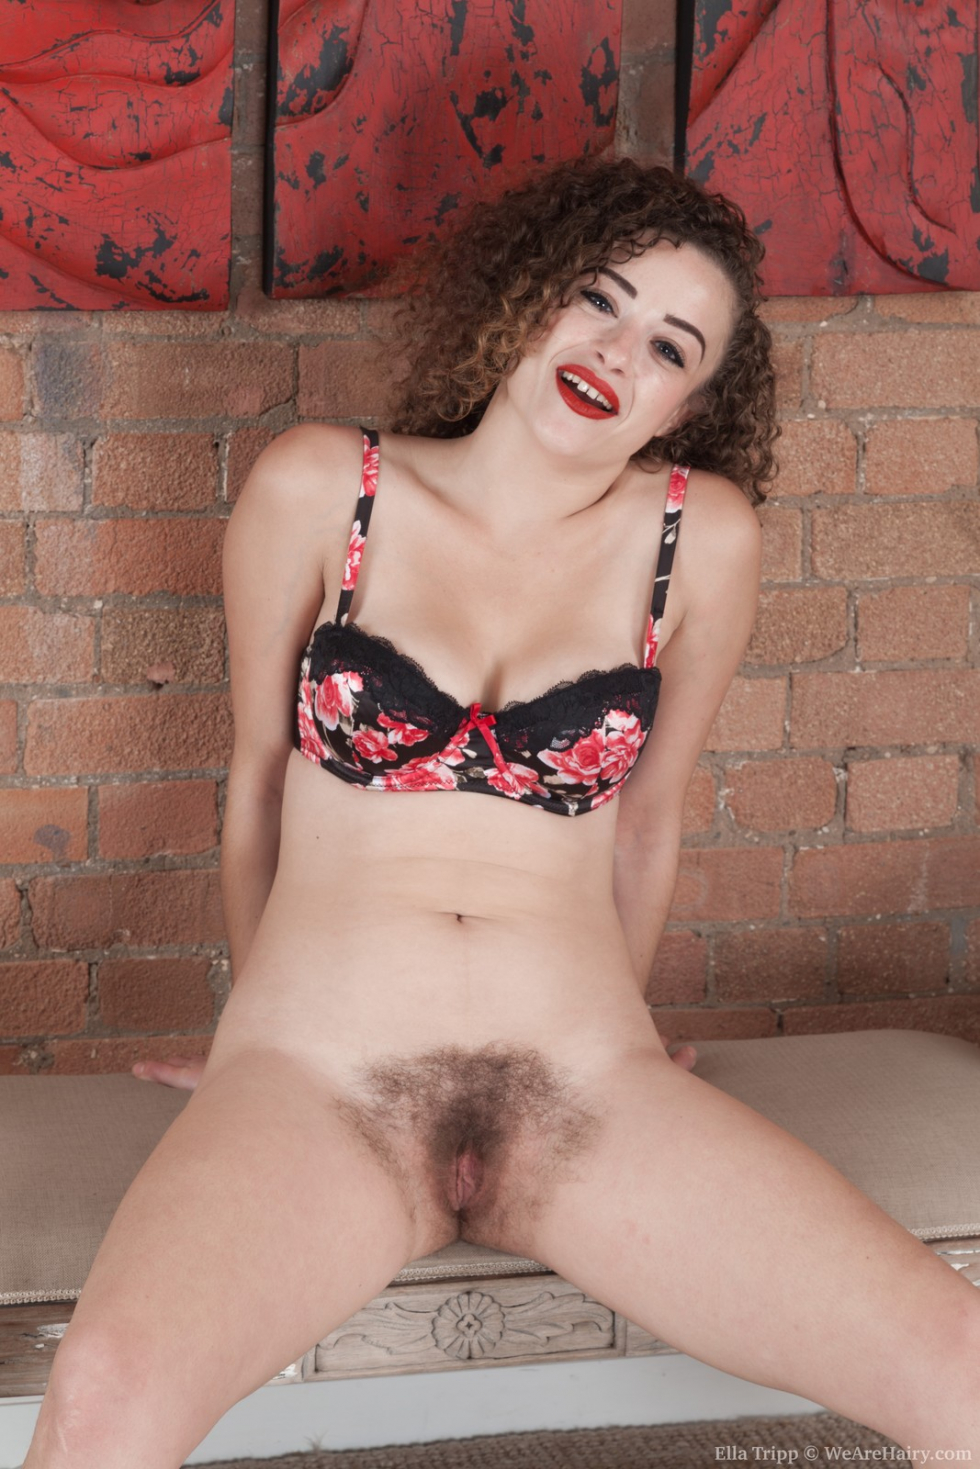 Ingrid and her beautiful hairy pussy - 1 10